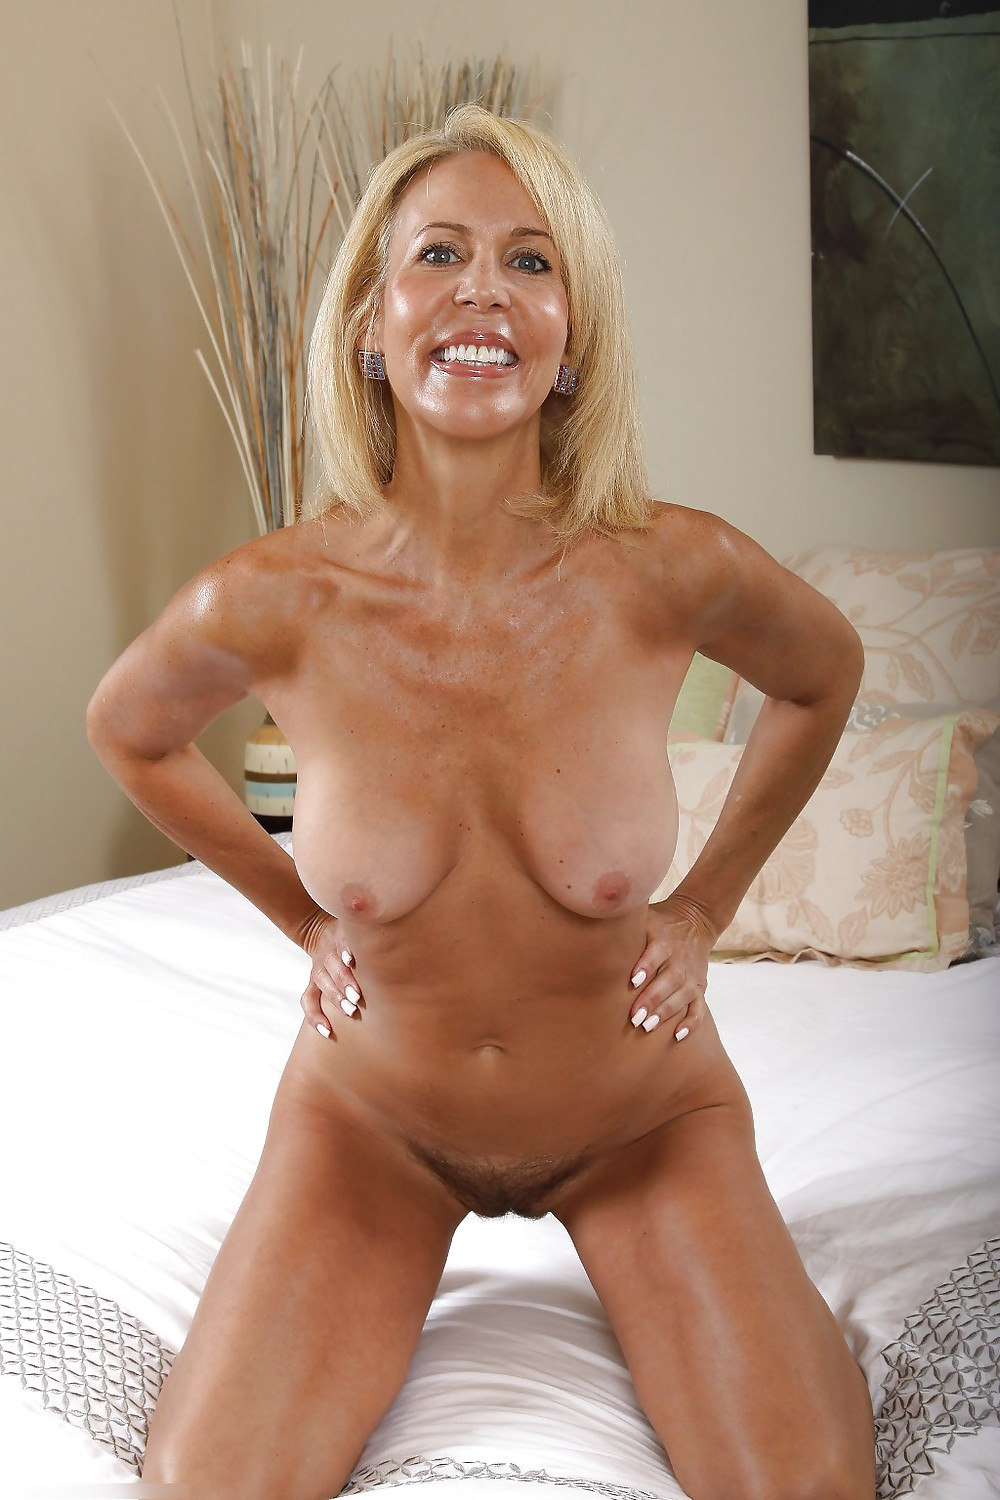 Short free mature blonde tanned videos hot